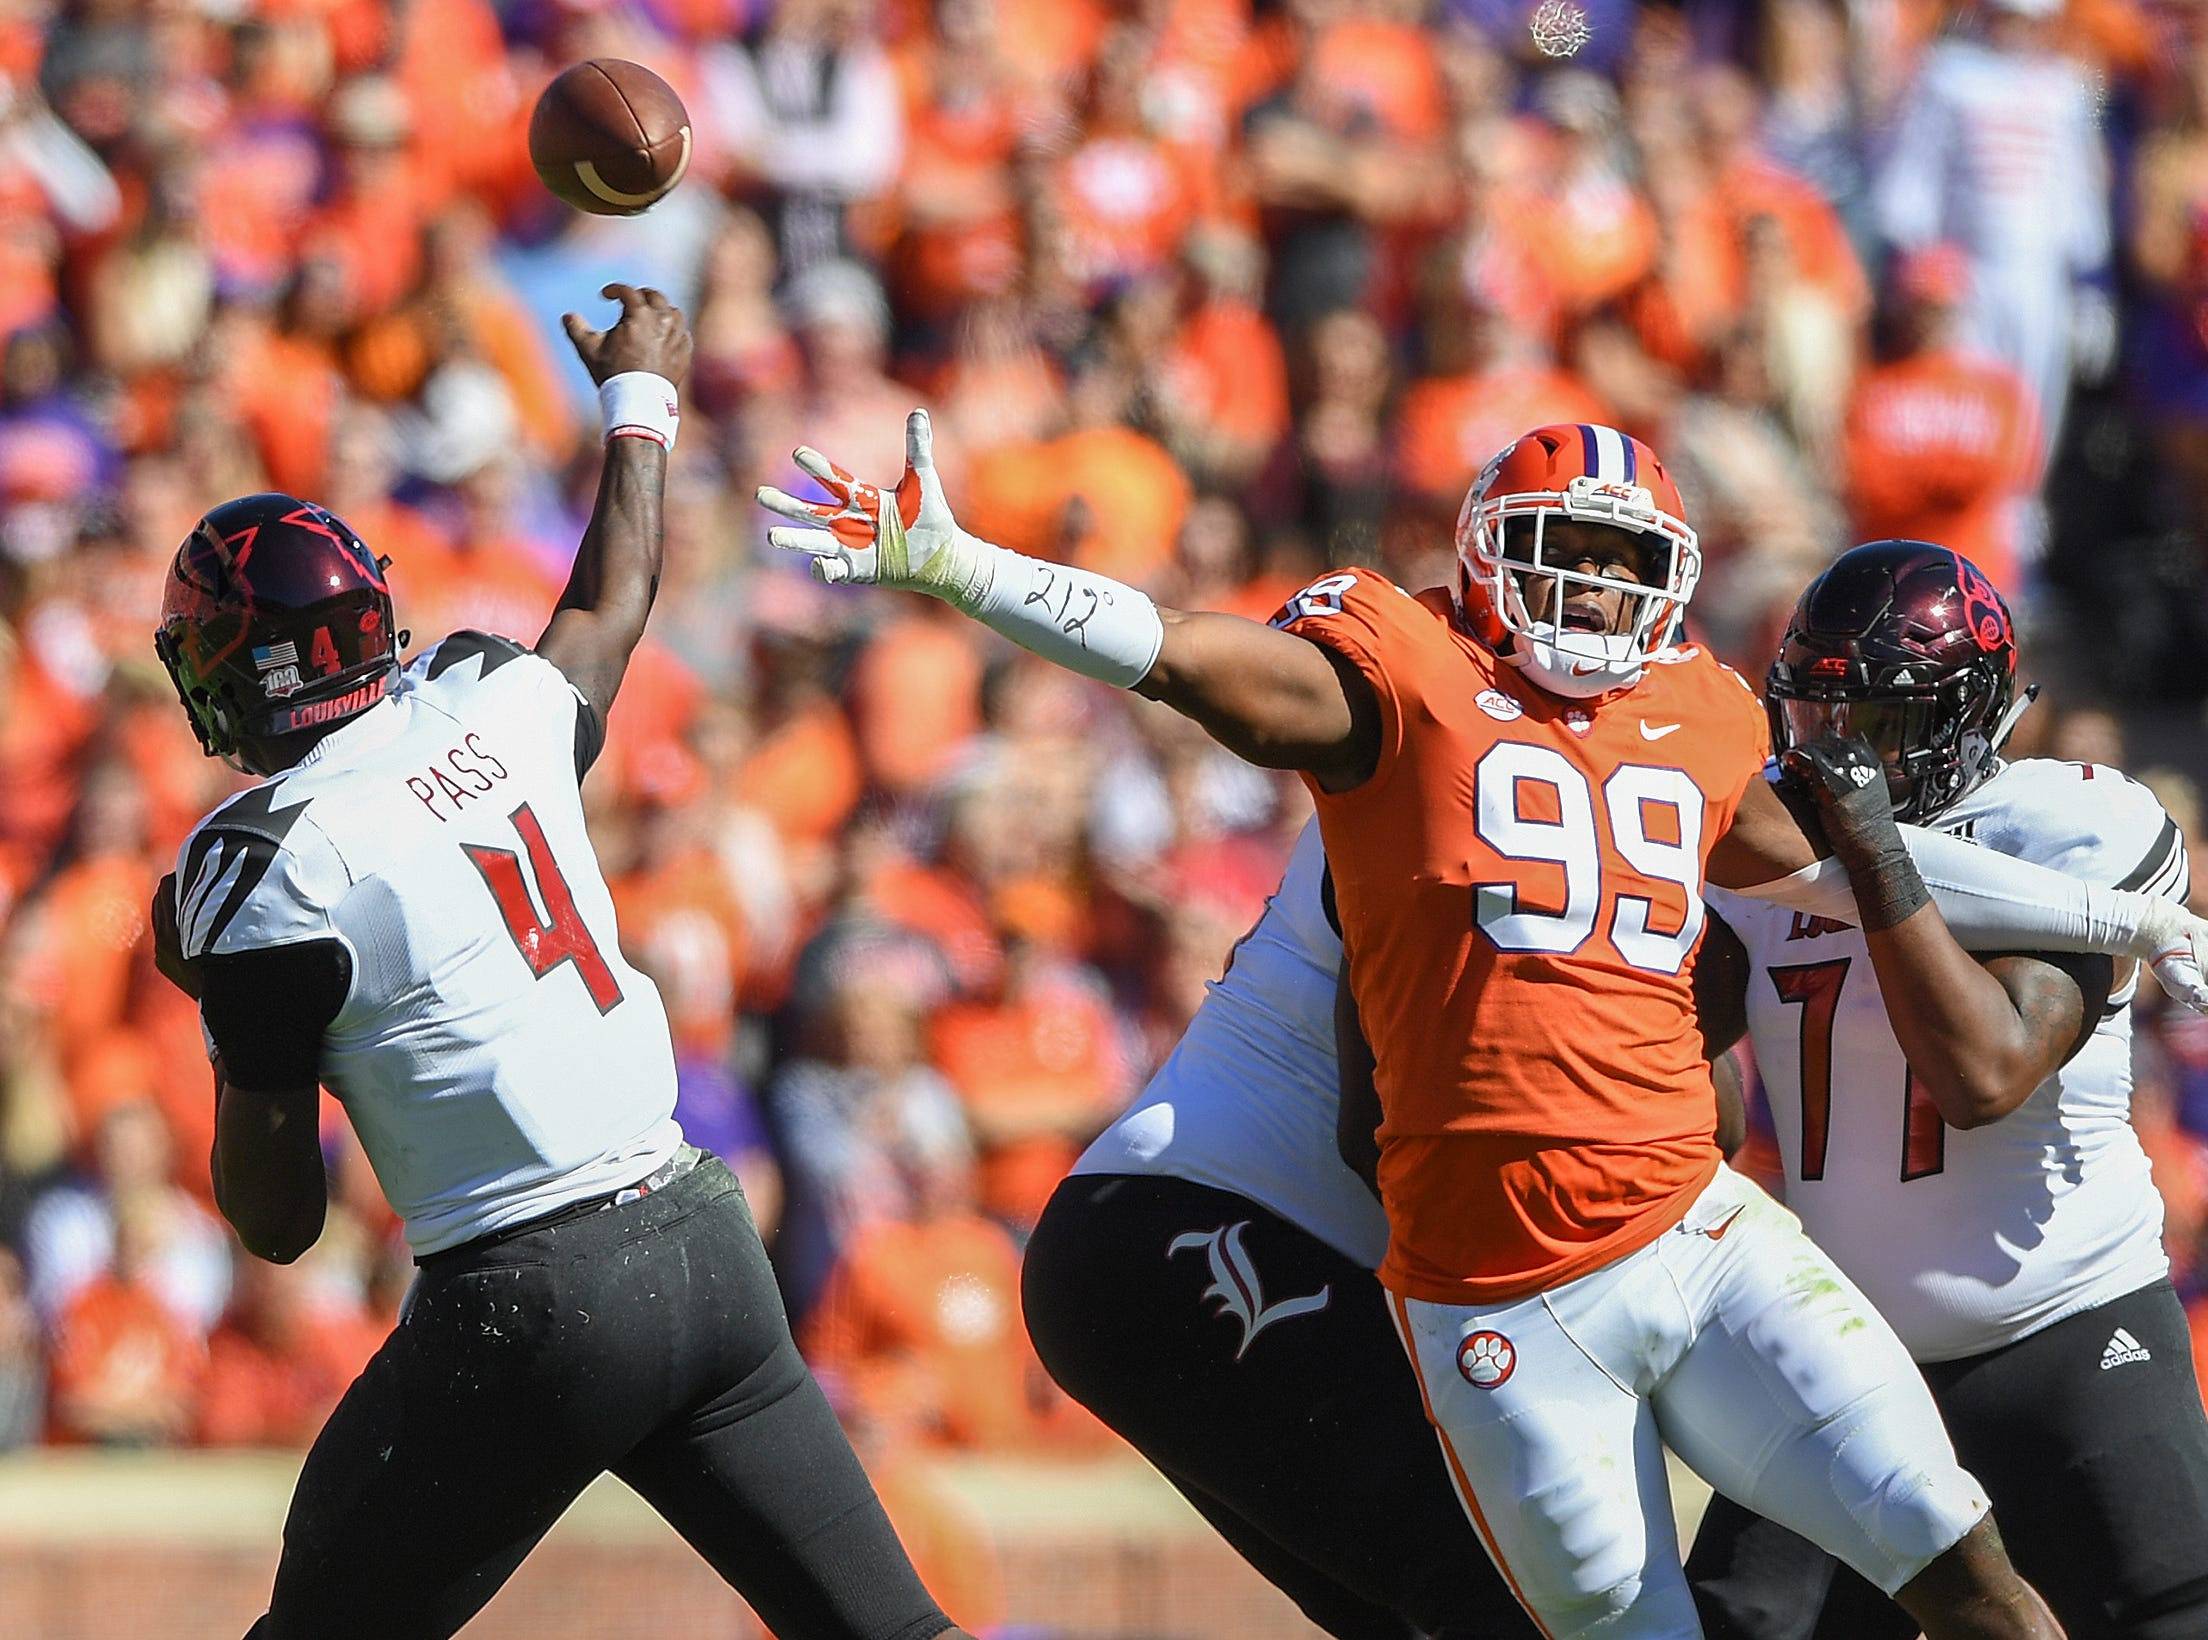 Clemson defensive lineman Clelin Ferrell (99) is held by Louisville offensive lineman Linwood Foy (77) while trying to get to quarterback Jawon Pass (4) during the 1st quarter Saturday, November 3, 2018 at Clemson's Memorial Stadium.